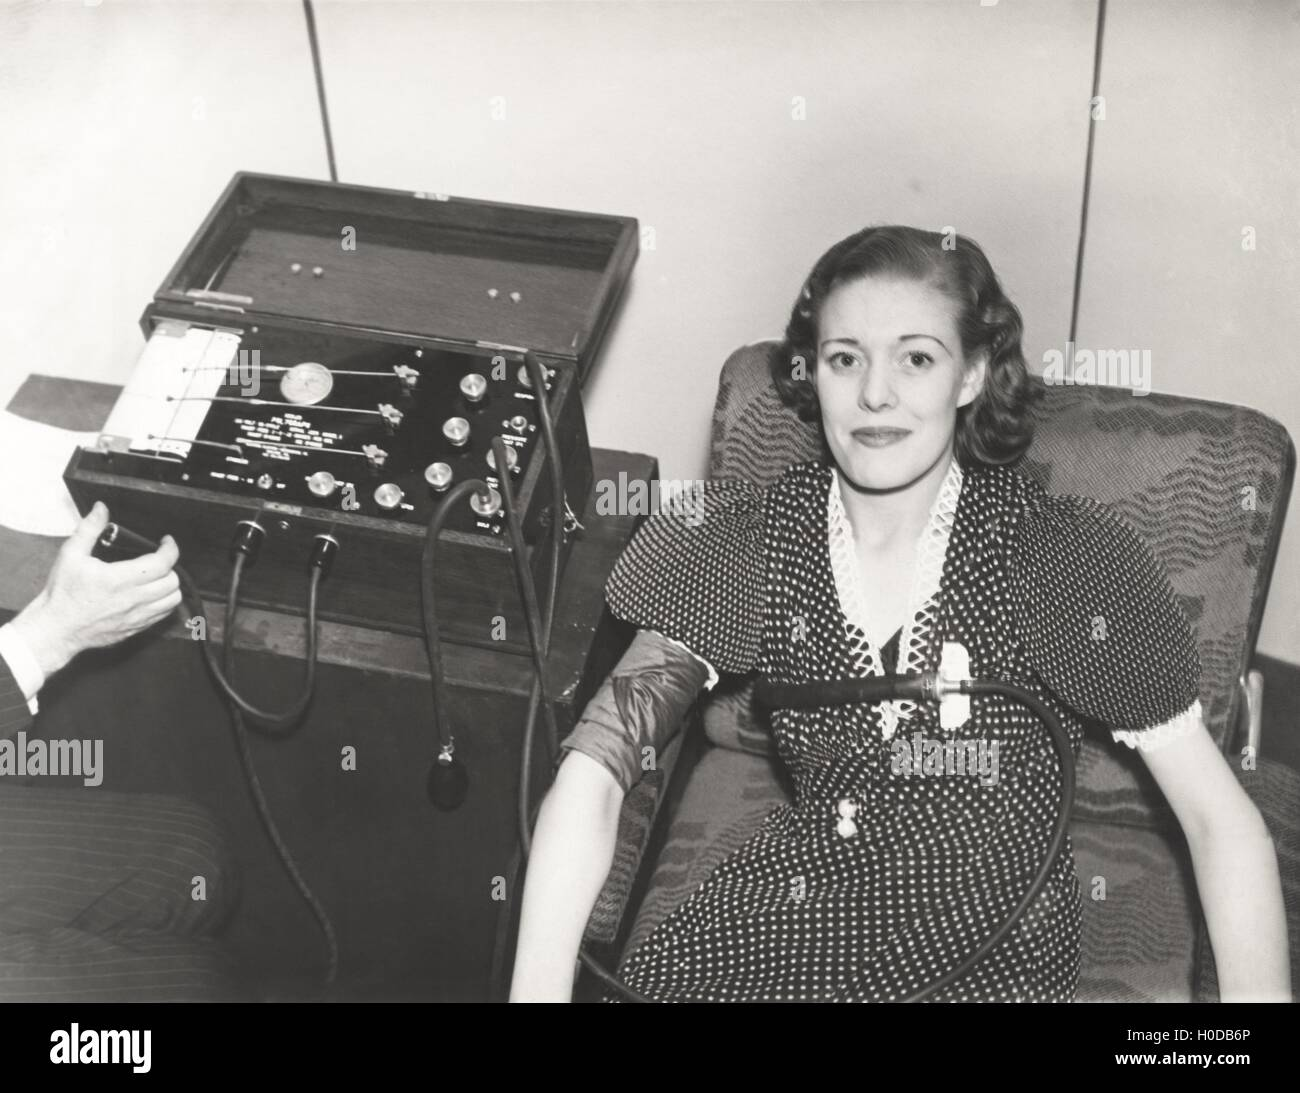 Woman taking a polygraph test - Stock Image